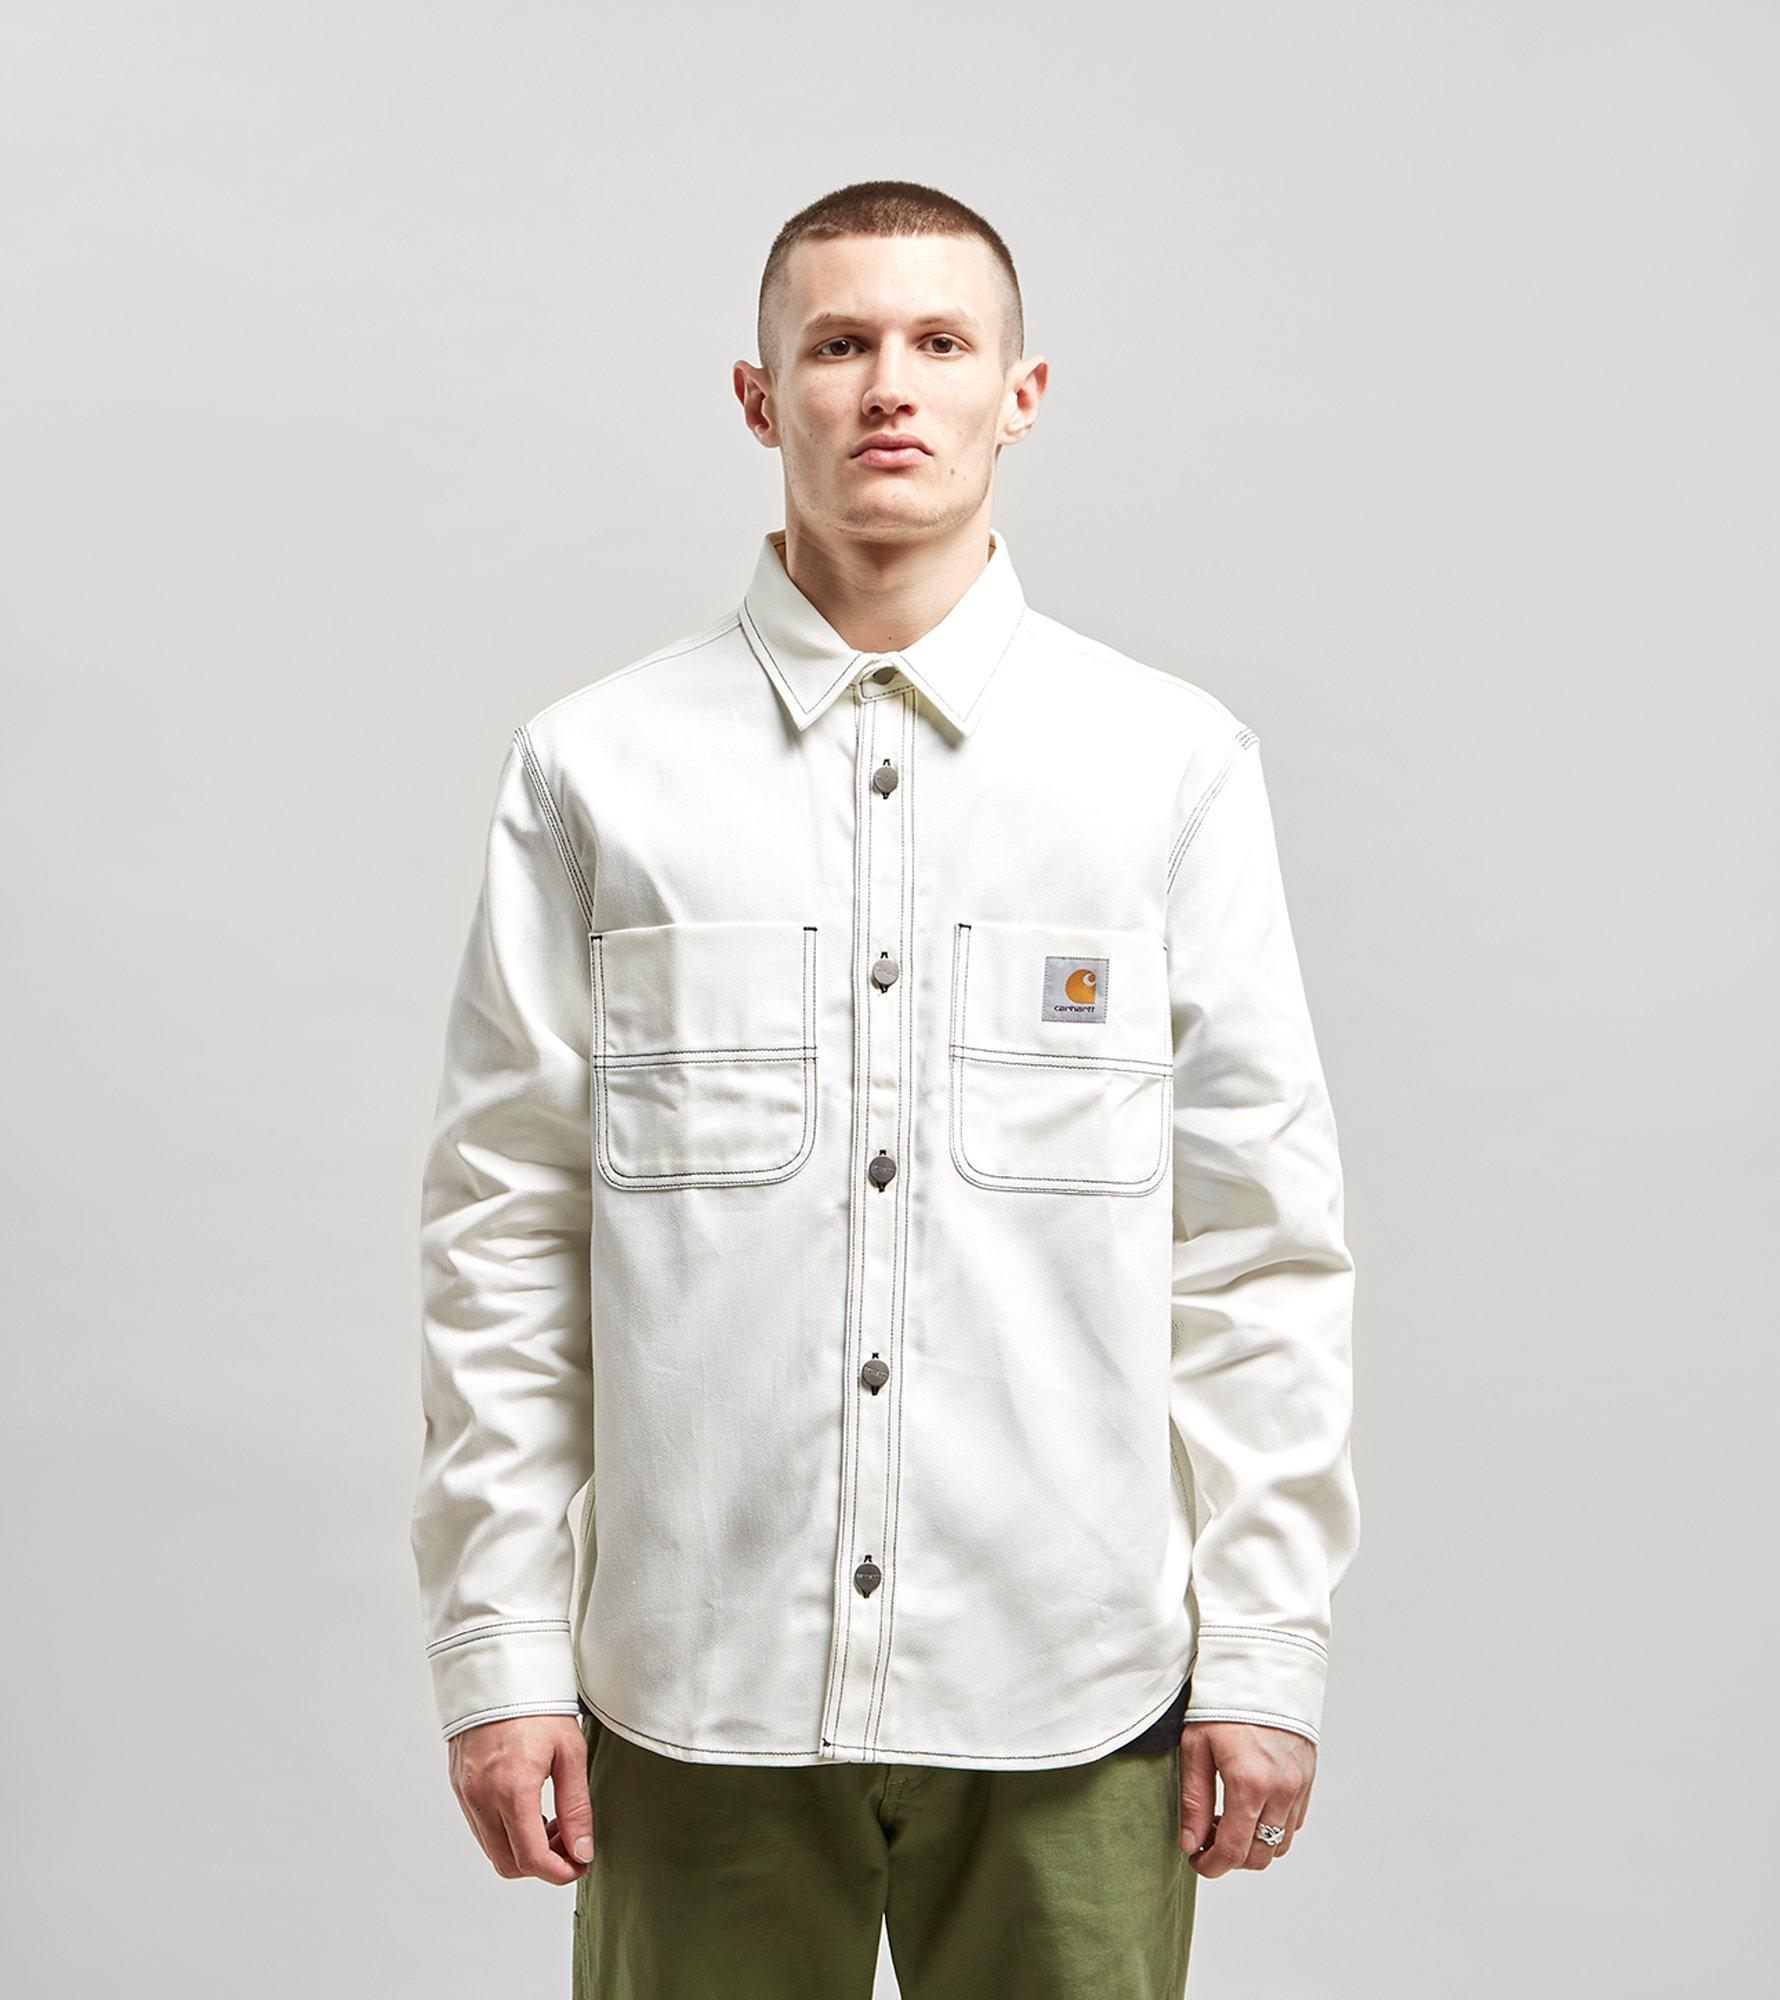 temperament shoes fast delivery uk store Carhartt Chalk Shirt Jacket